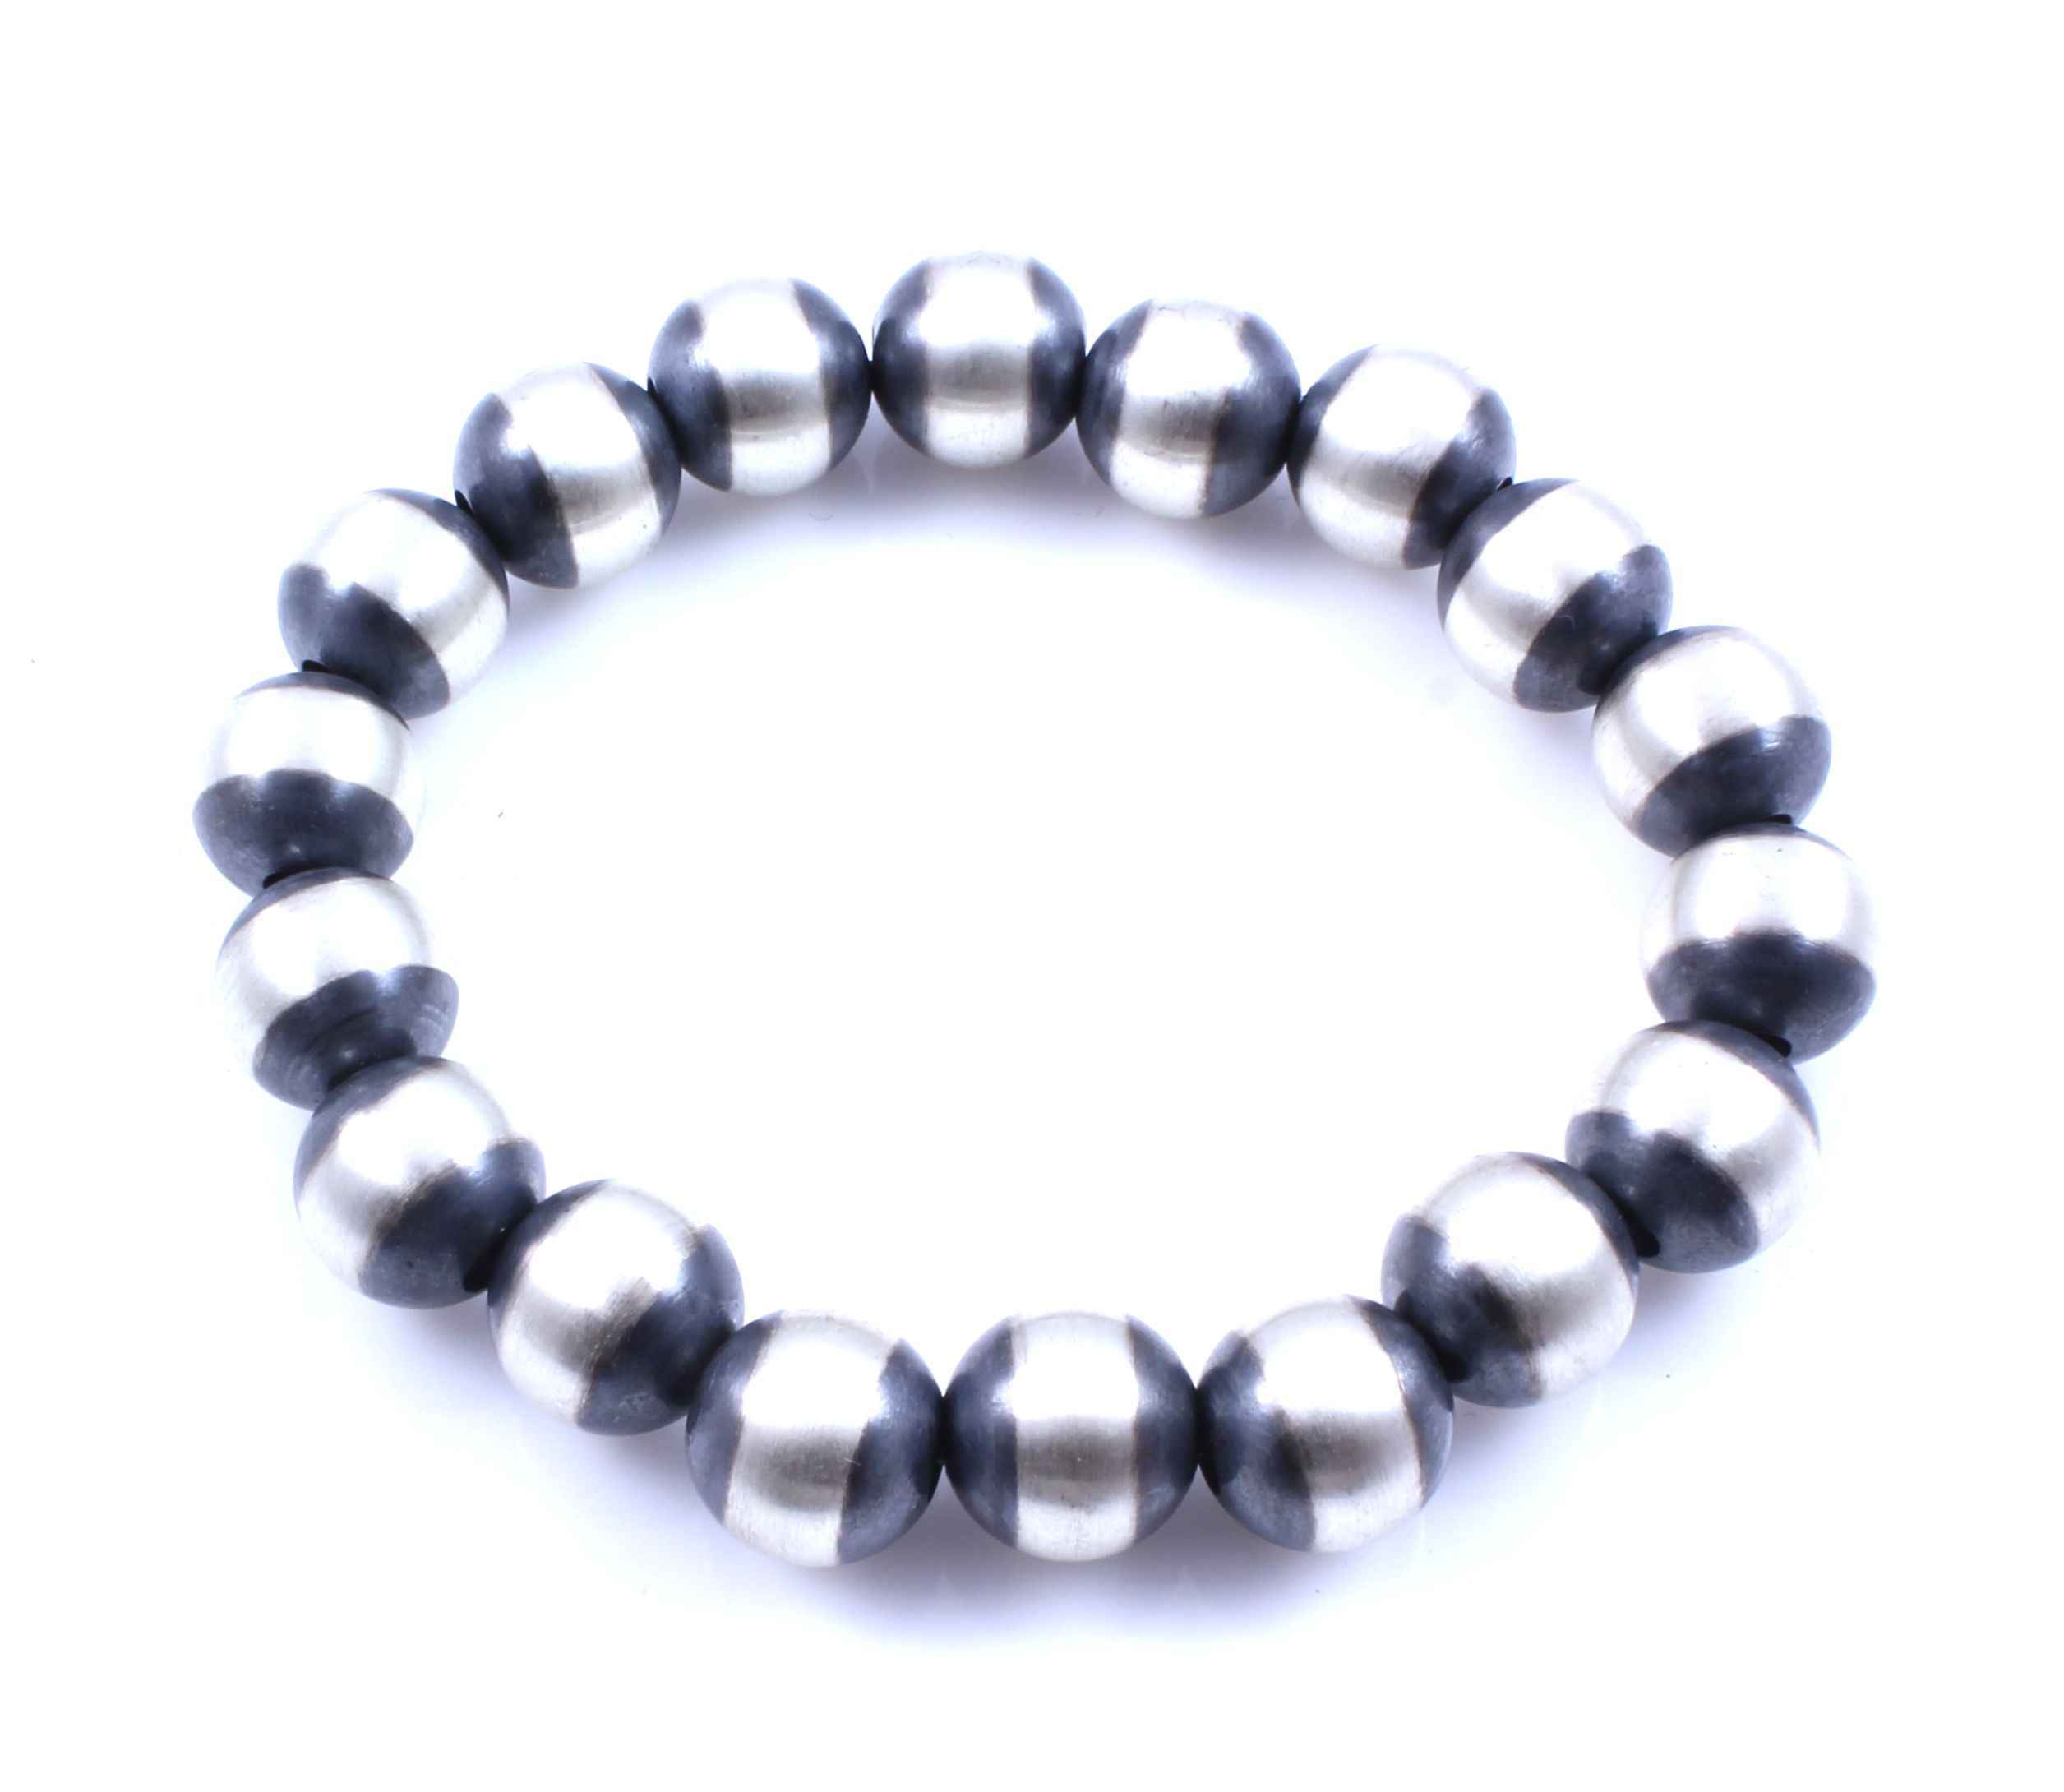 bead premium skull hematite products crystal swarovski bracelet stretch beads